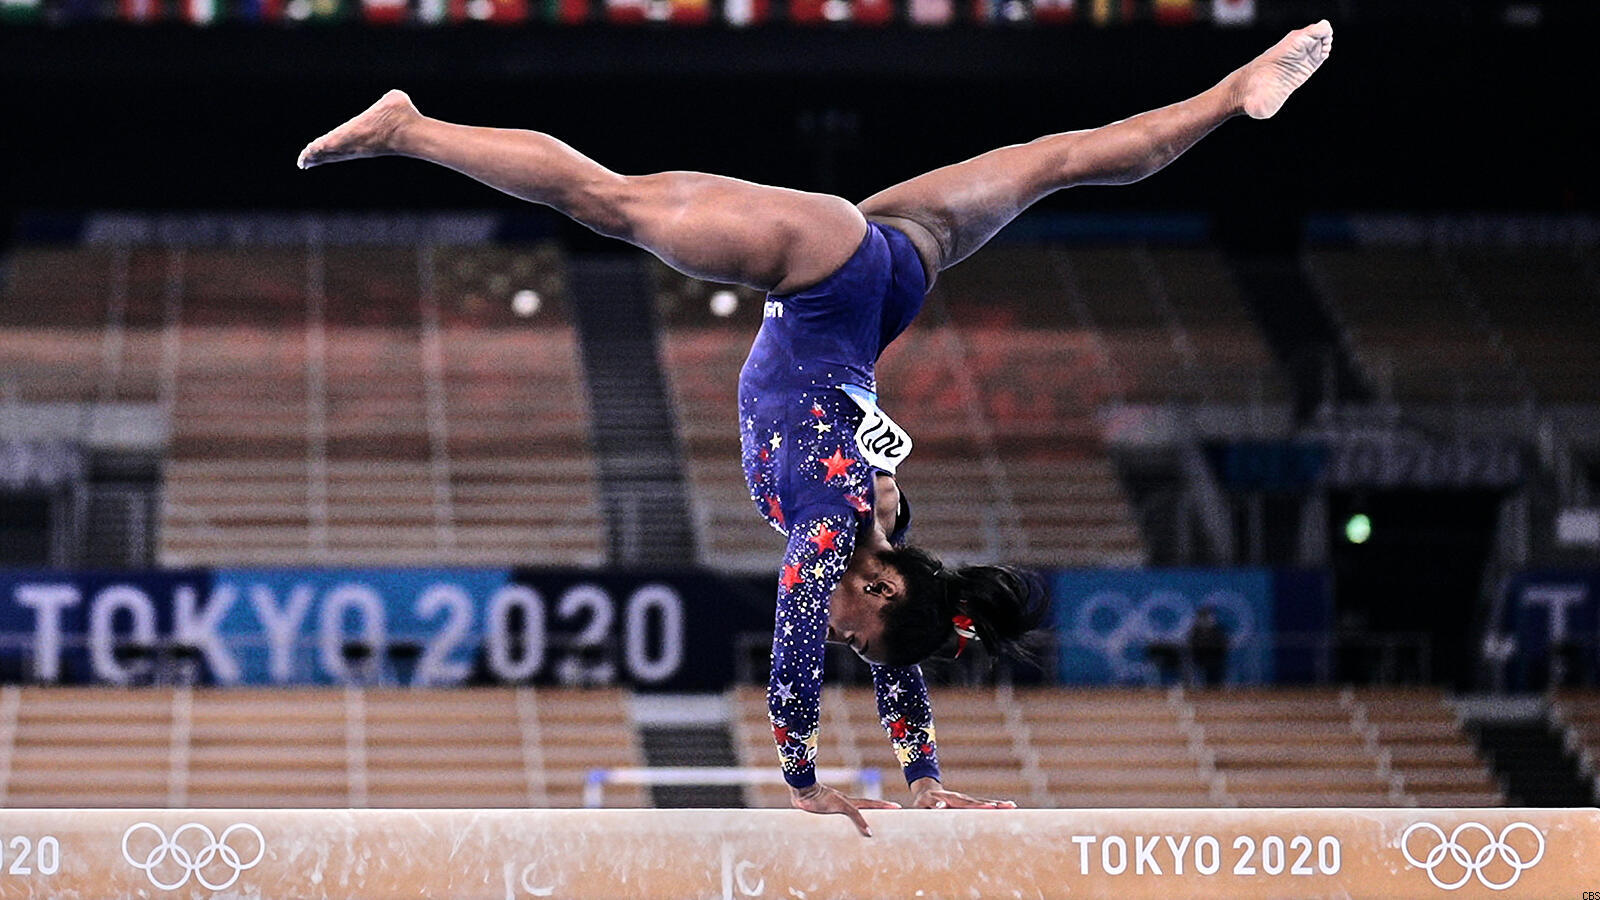 2021 Tokyo Olympics: How to Watch Simone Biles and Suni Lee in the Balance  Beam Event Final - TV Guide